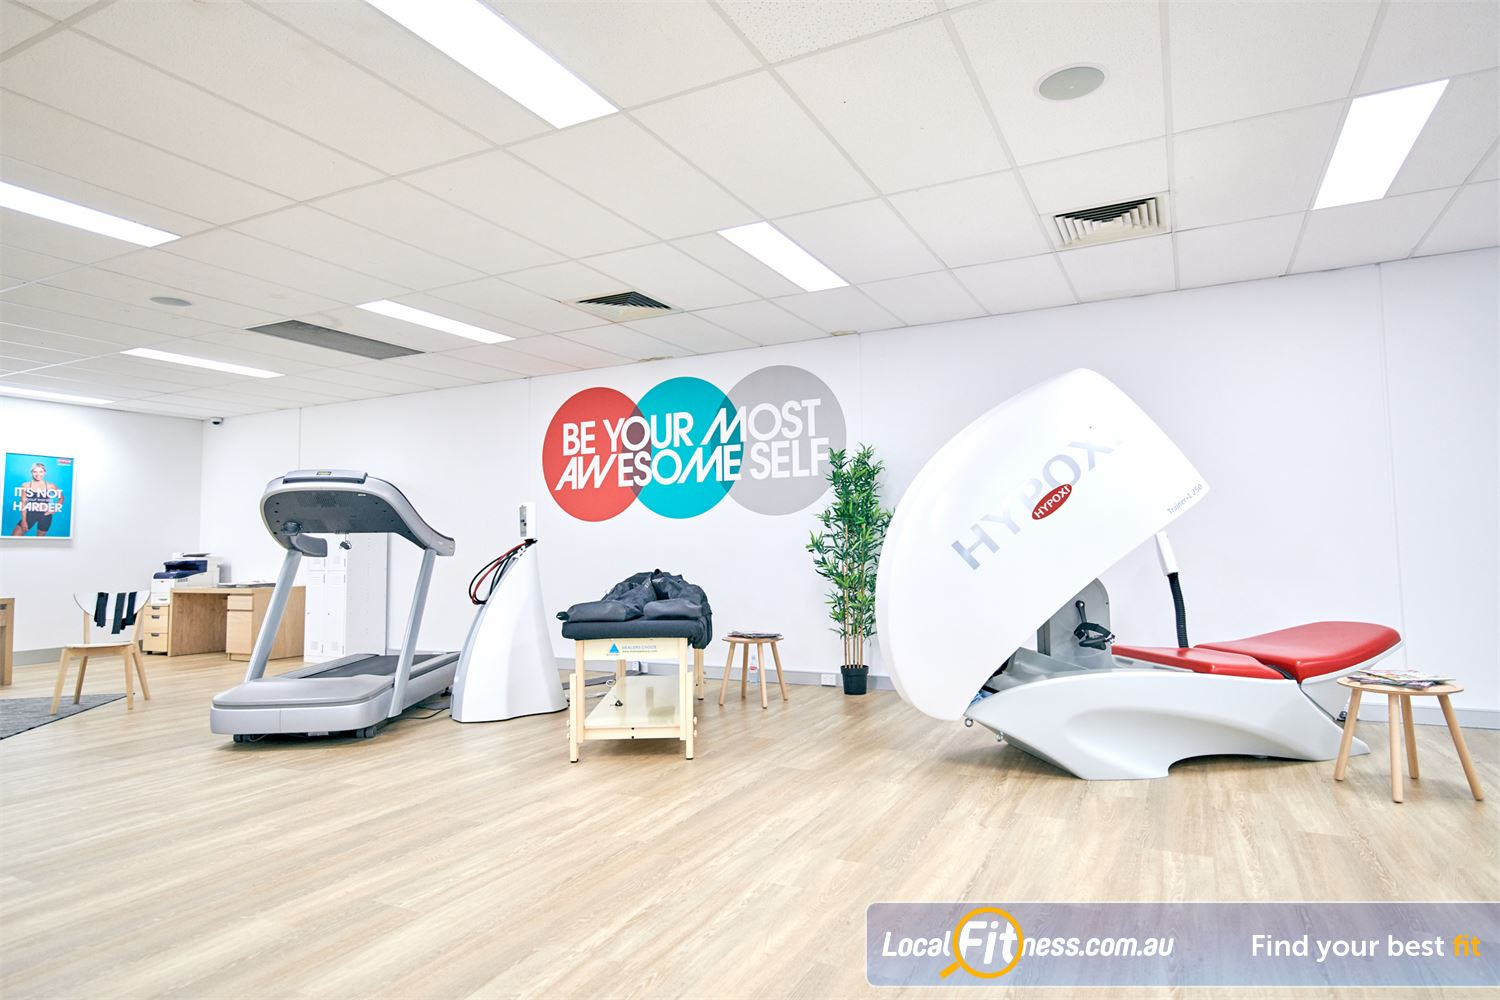 HYPOXI Weight Loss Glen Waverley Our HYPOXI method can help with cellulite reduction in Glen Waverley.